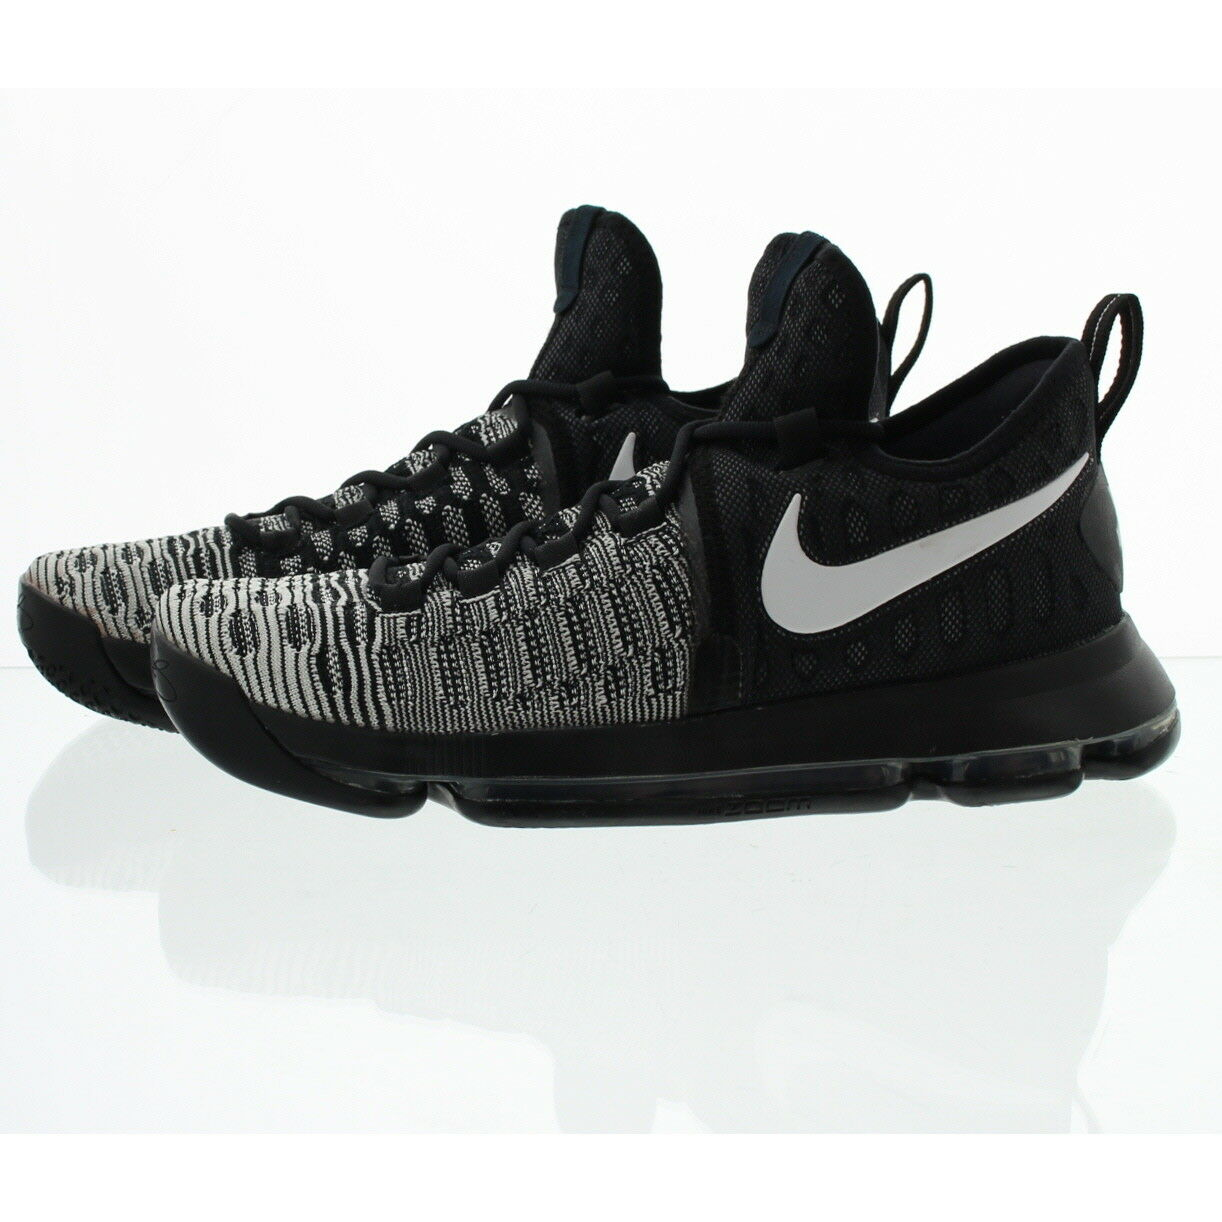 Nike 843395 kevin durant 9 mitte - top mens - basketball - mitte schuhe, schuhe 441ad5